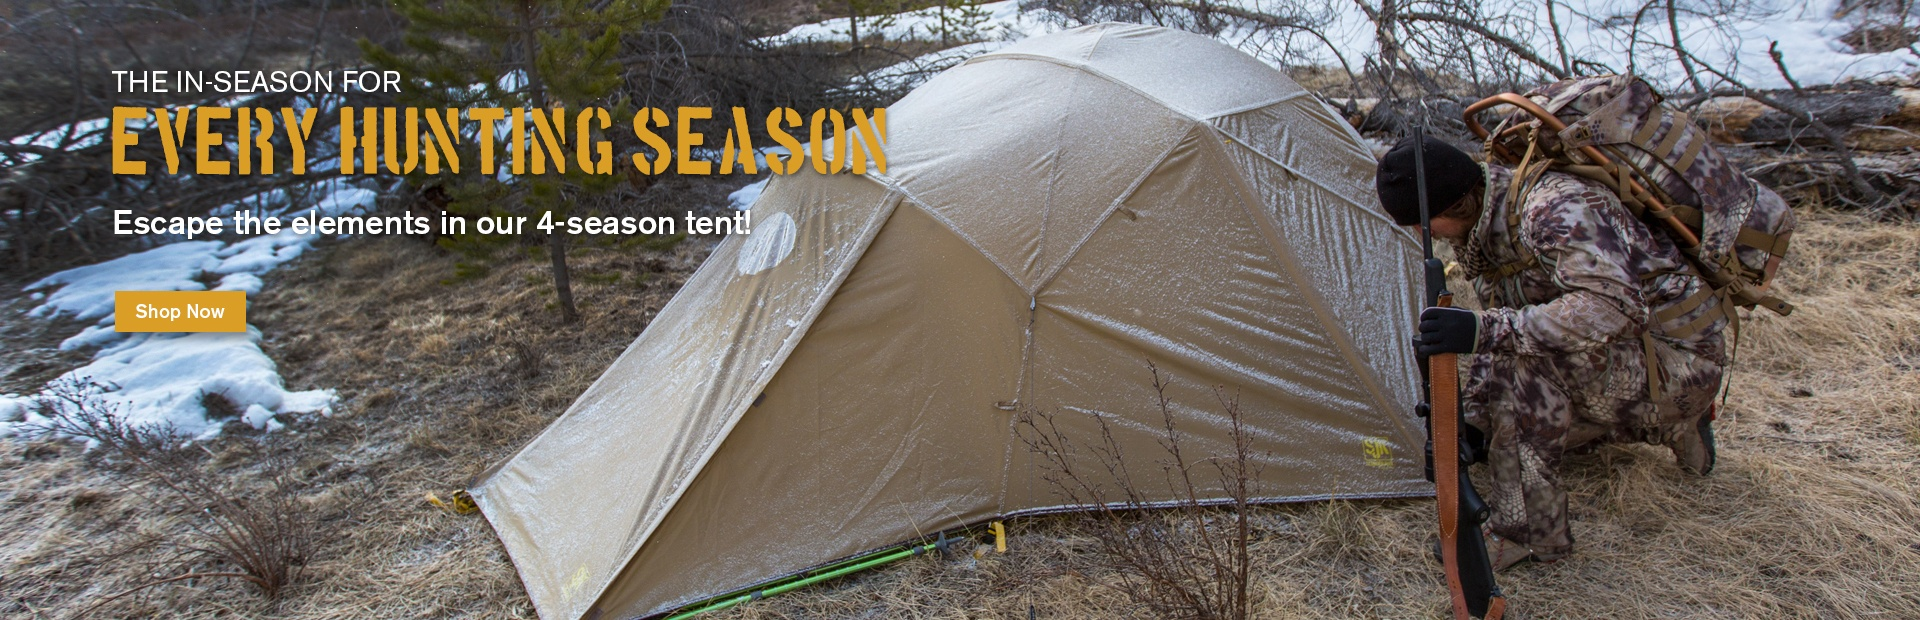 The In-Season Tent: For Every Hunting Season